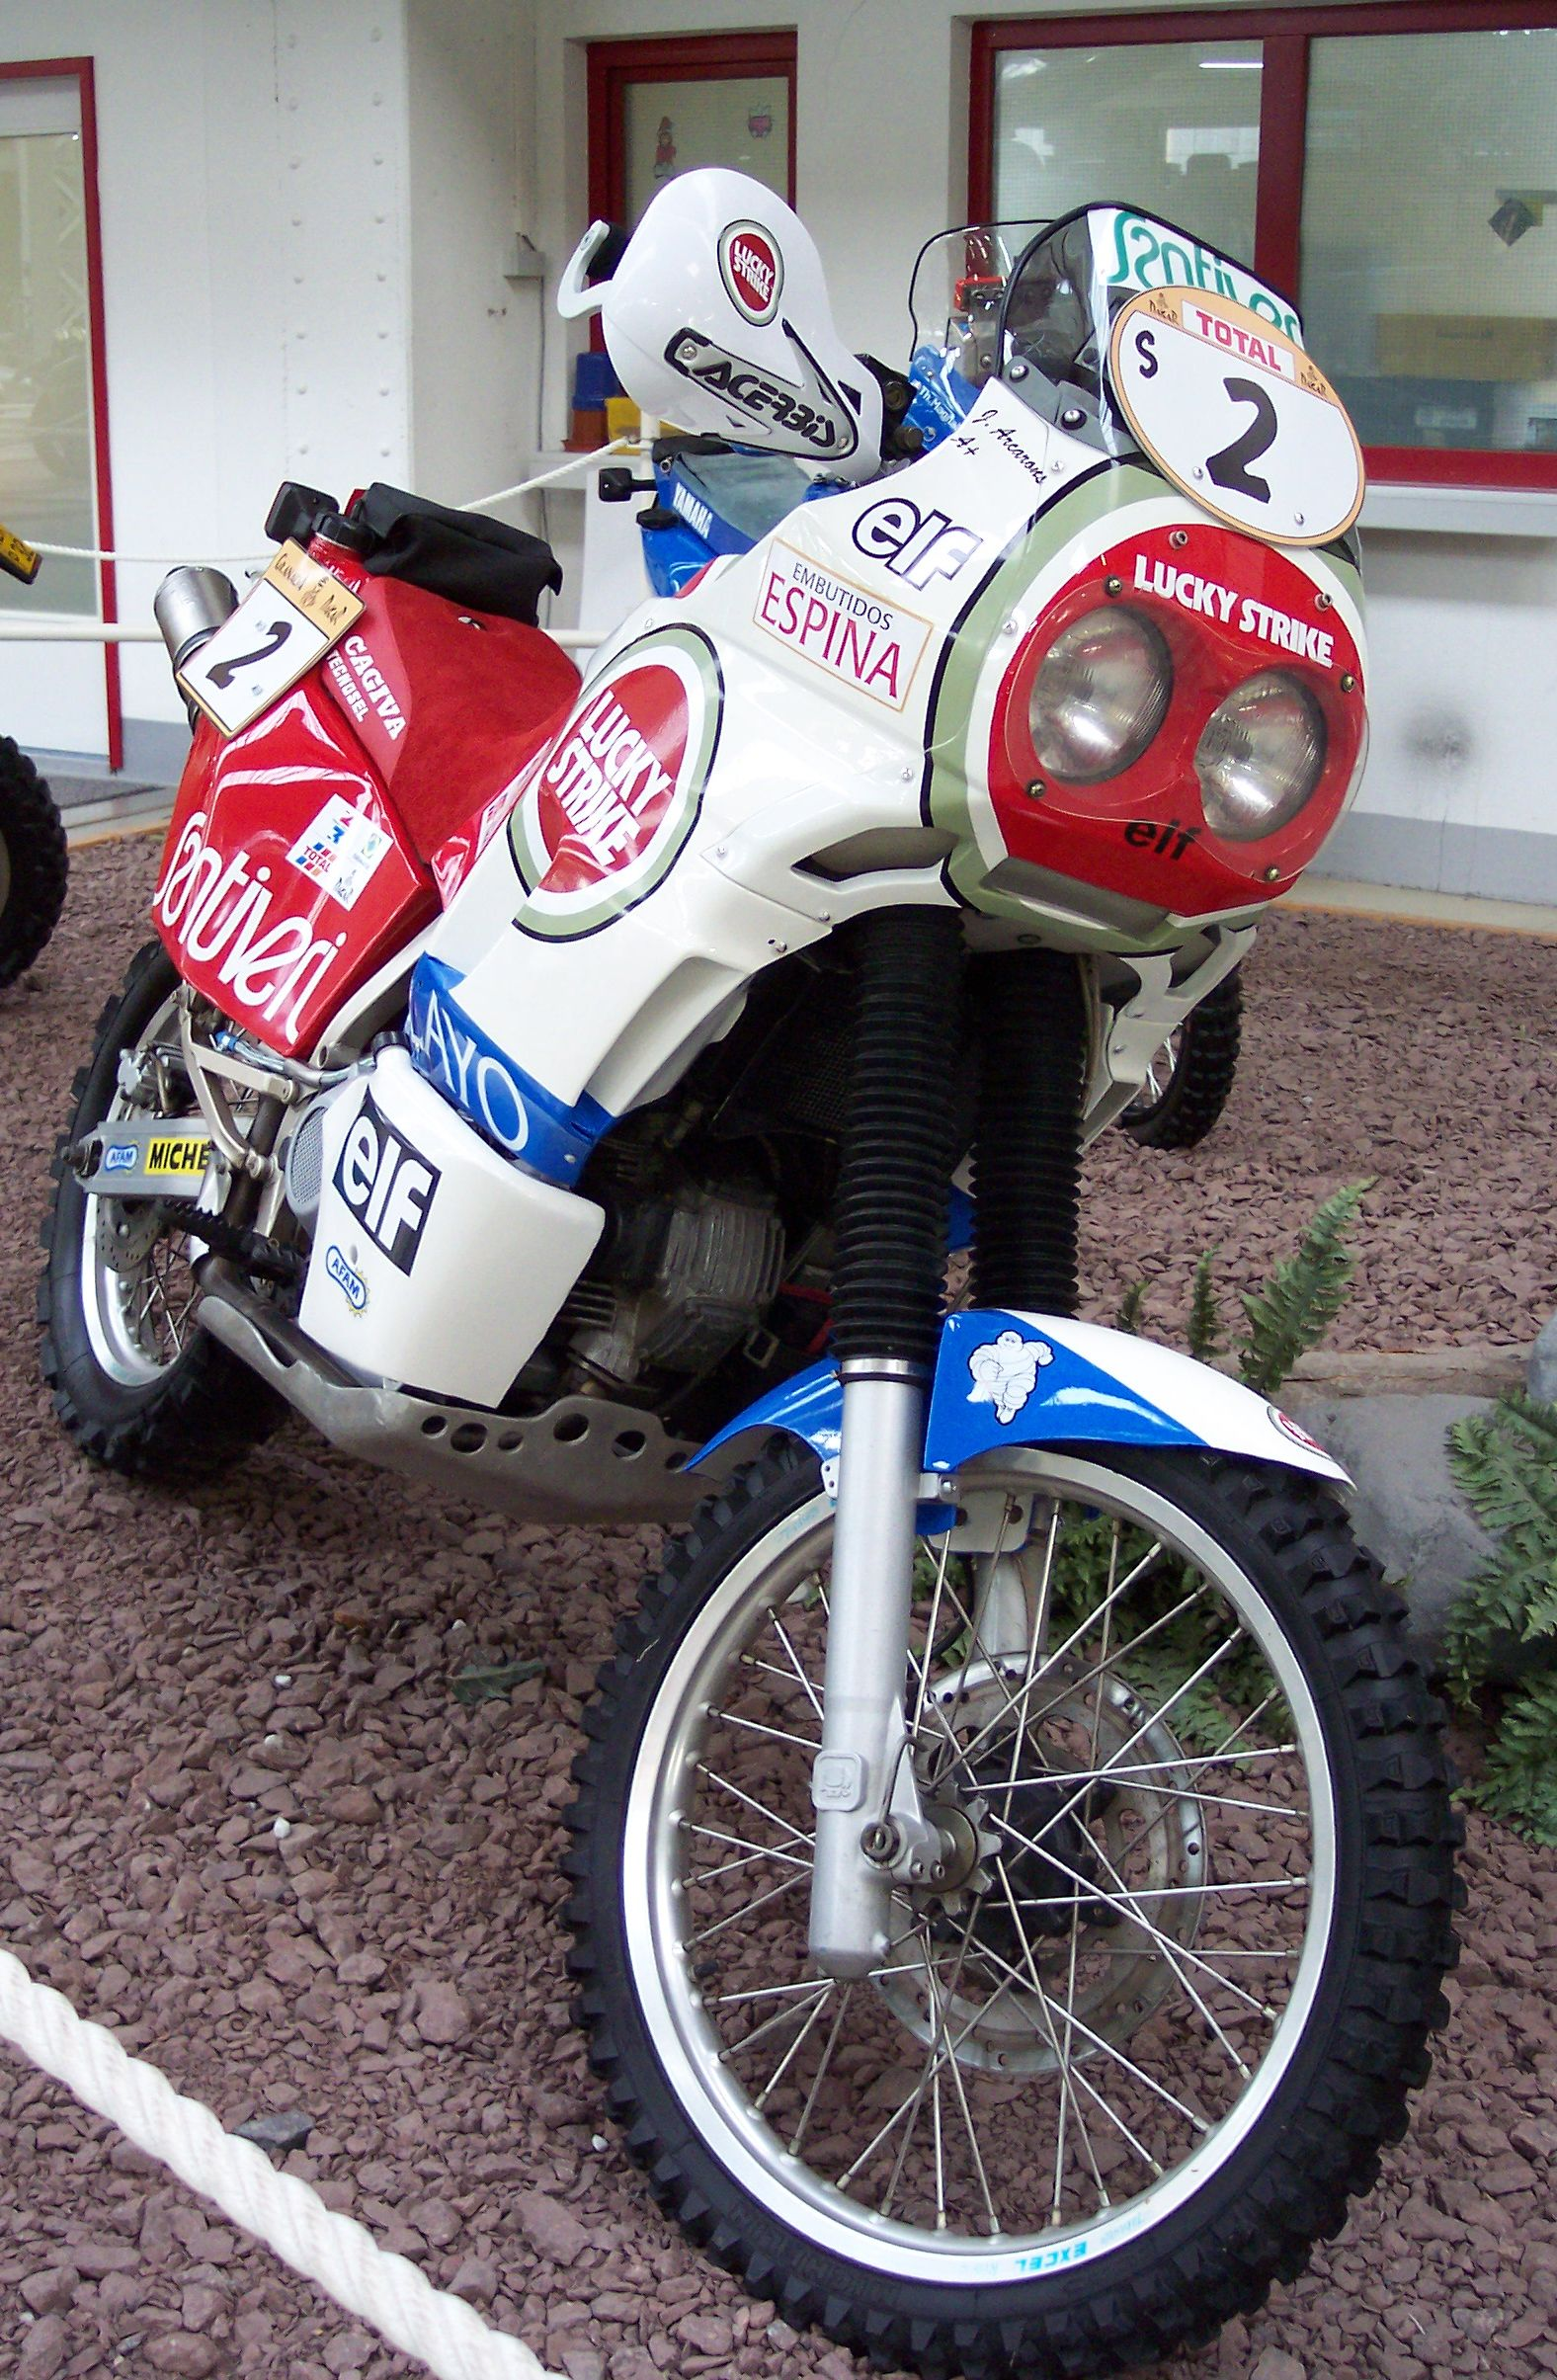 Cagiva Planet 125 1999 images #67391